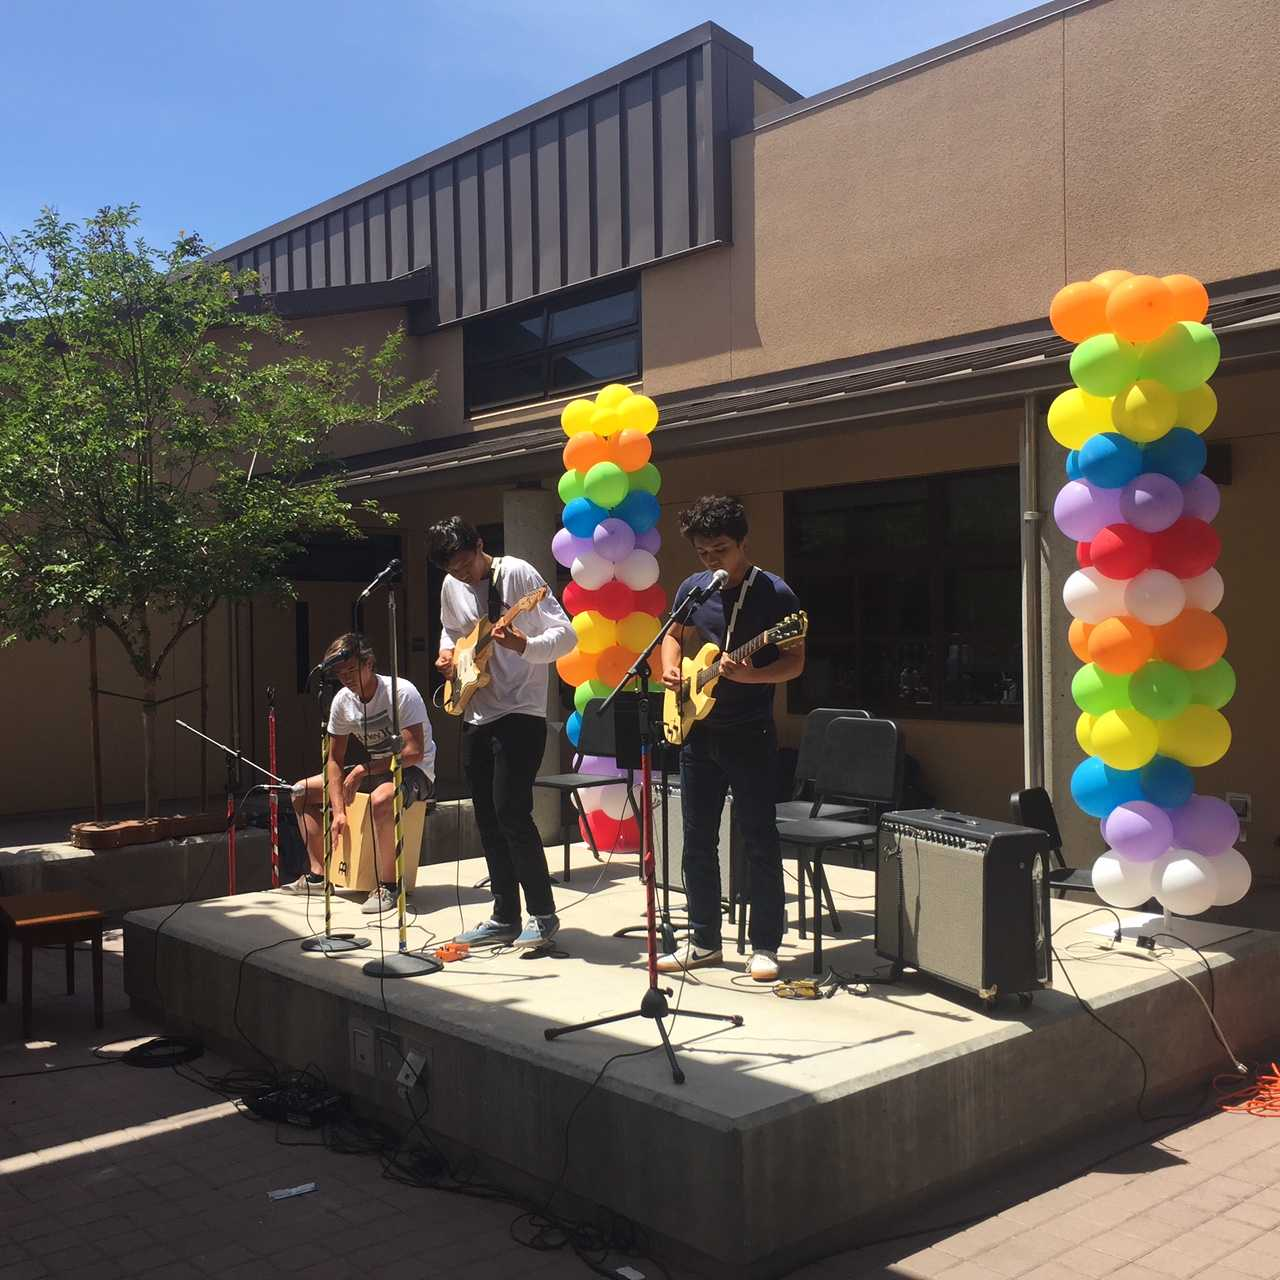 Science Club performs during Quadchella, showcasing it's unique band of indie, surf and garage rock